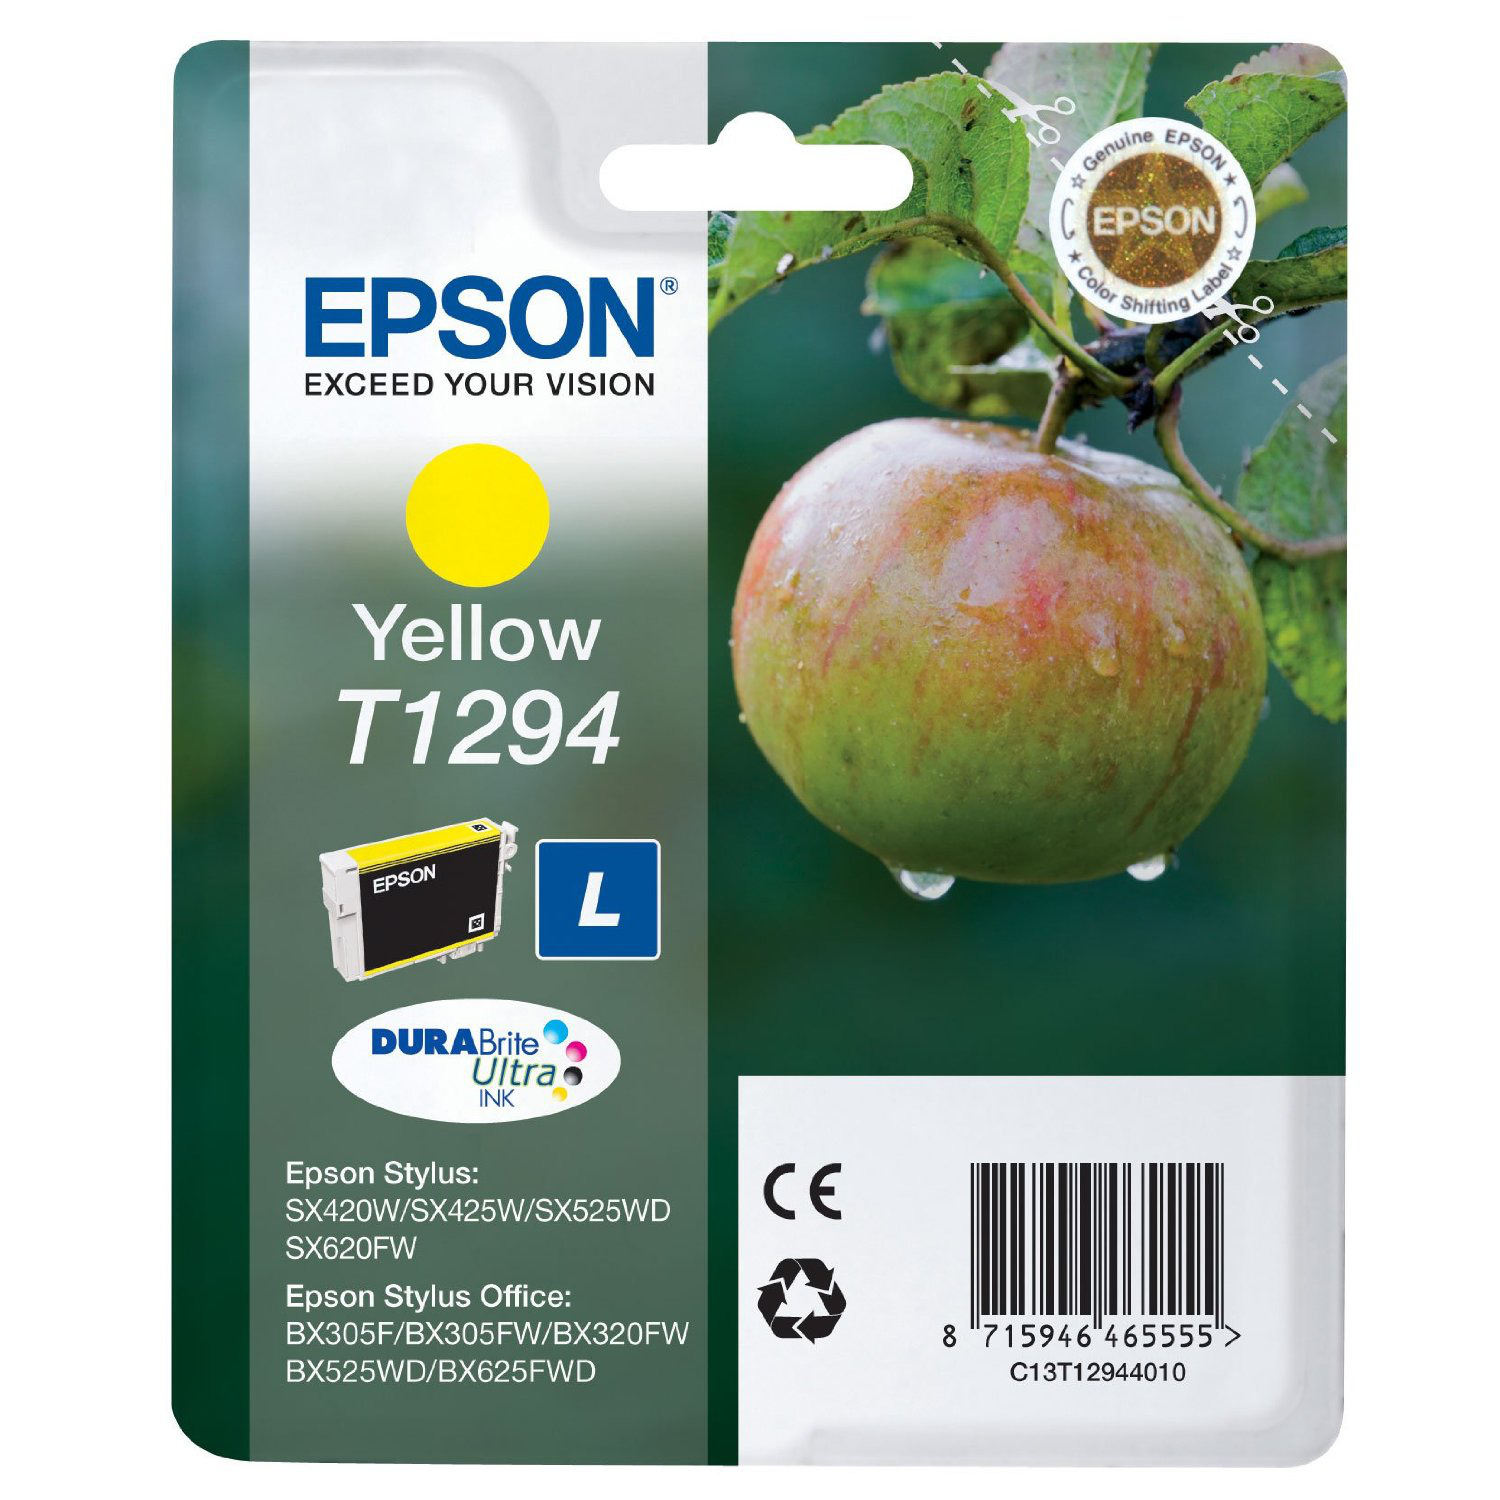 BB Compat Epson C13T12944010 (T1294) Yellow Cart C13T12944010 - rem01